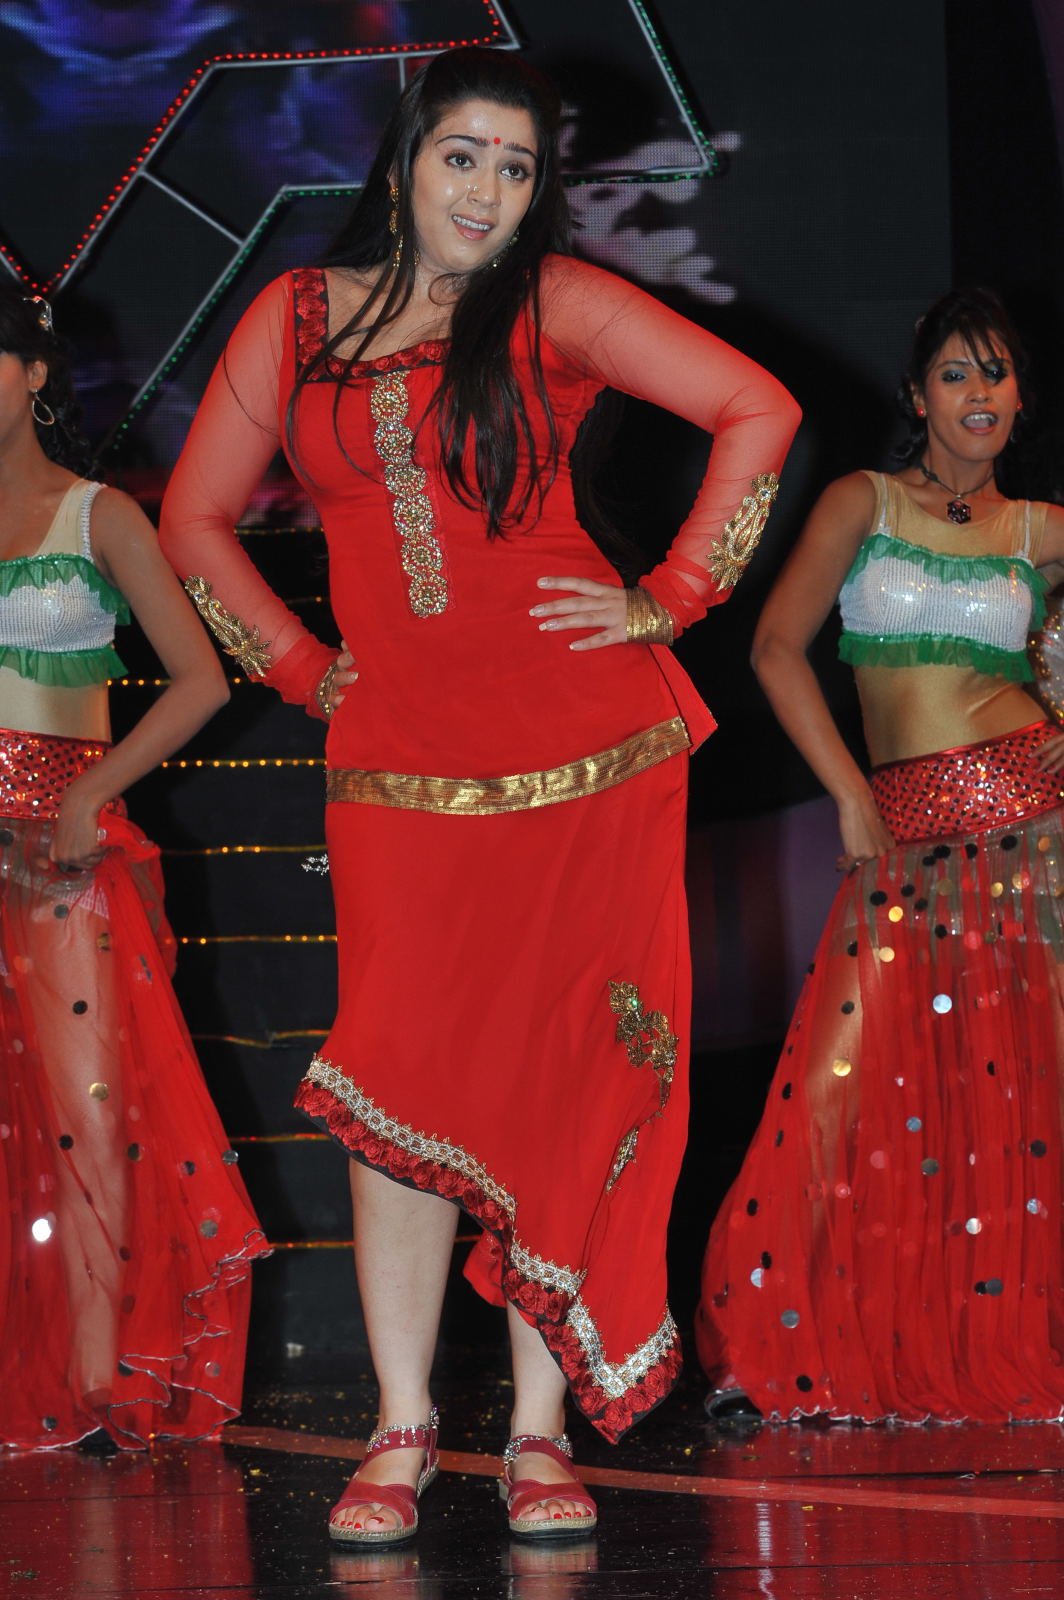 Heroines Dance Photos At Cinemaa Awards 2012: Actress Hot Dance Stage Performance @ Maa Music Awards